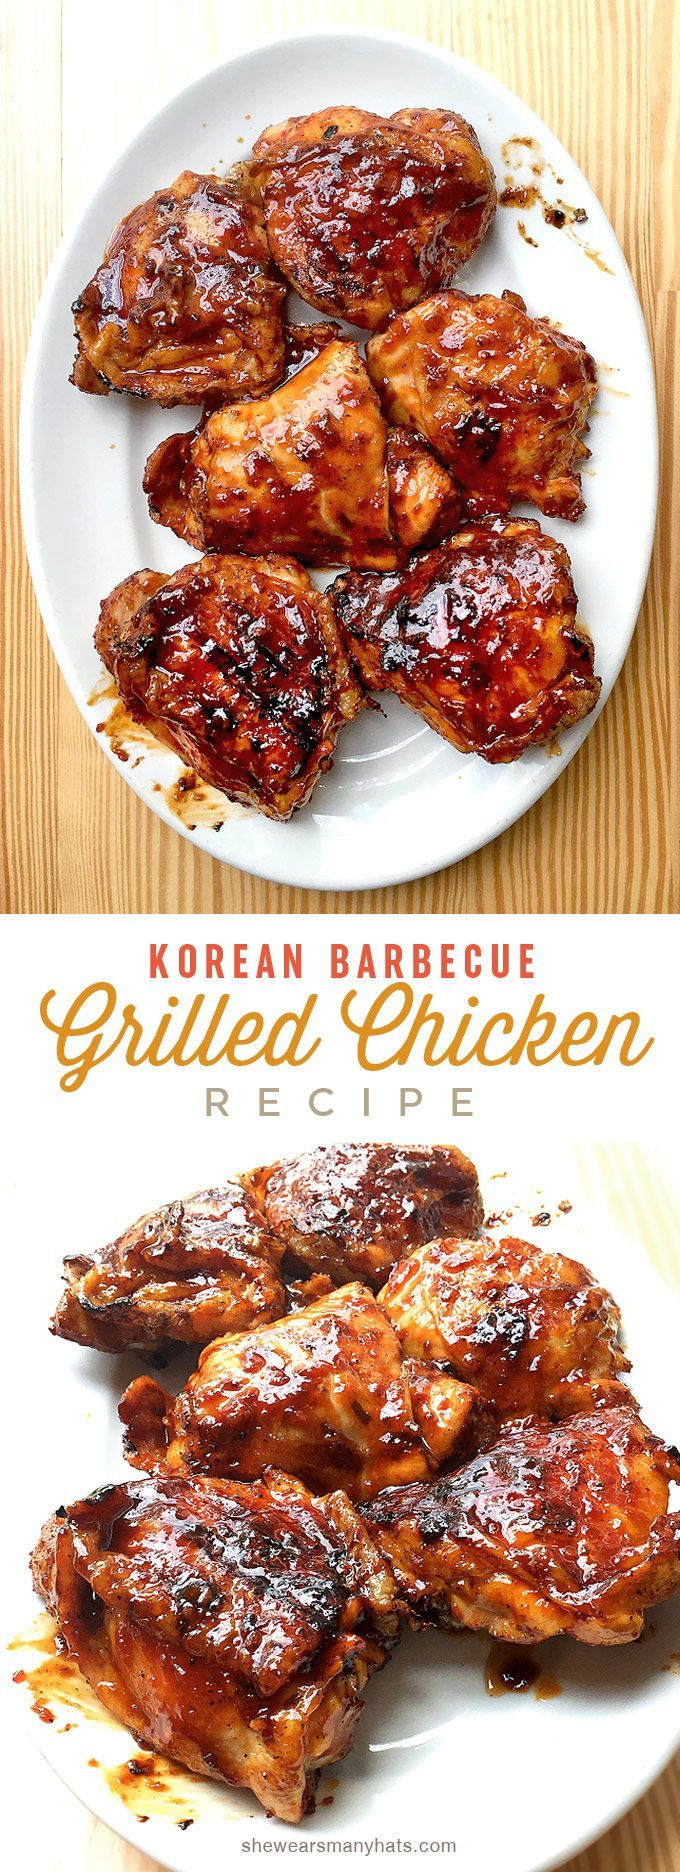 Korean BBQ Chicken Recipe | shewearsmanyhats.com